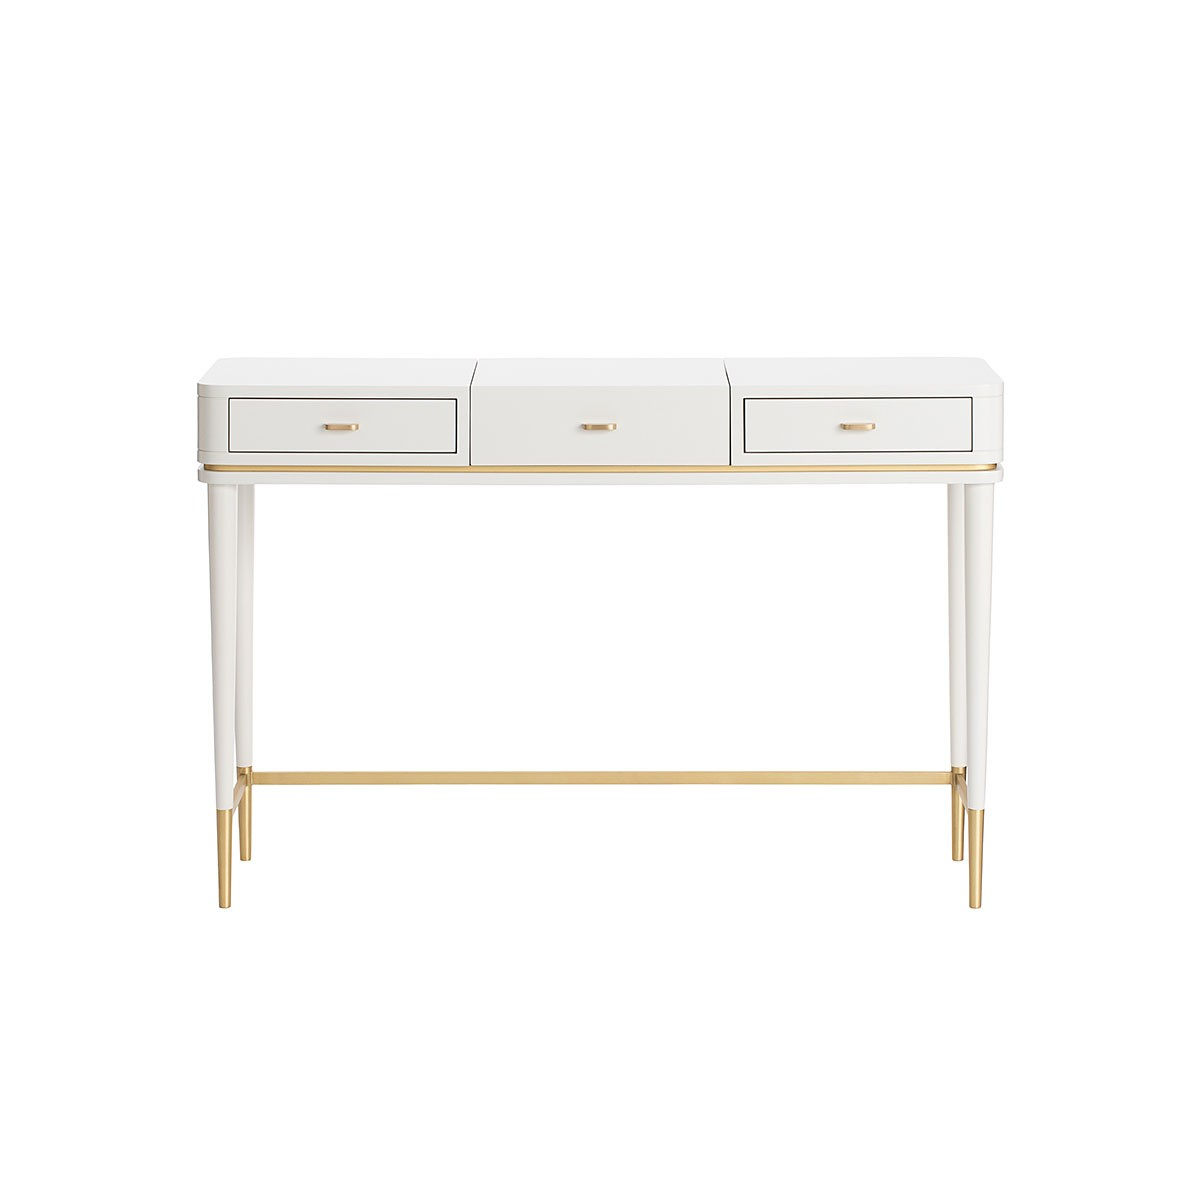 The Tito Dressing Table